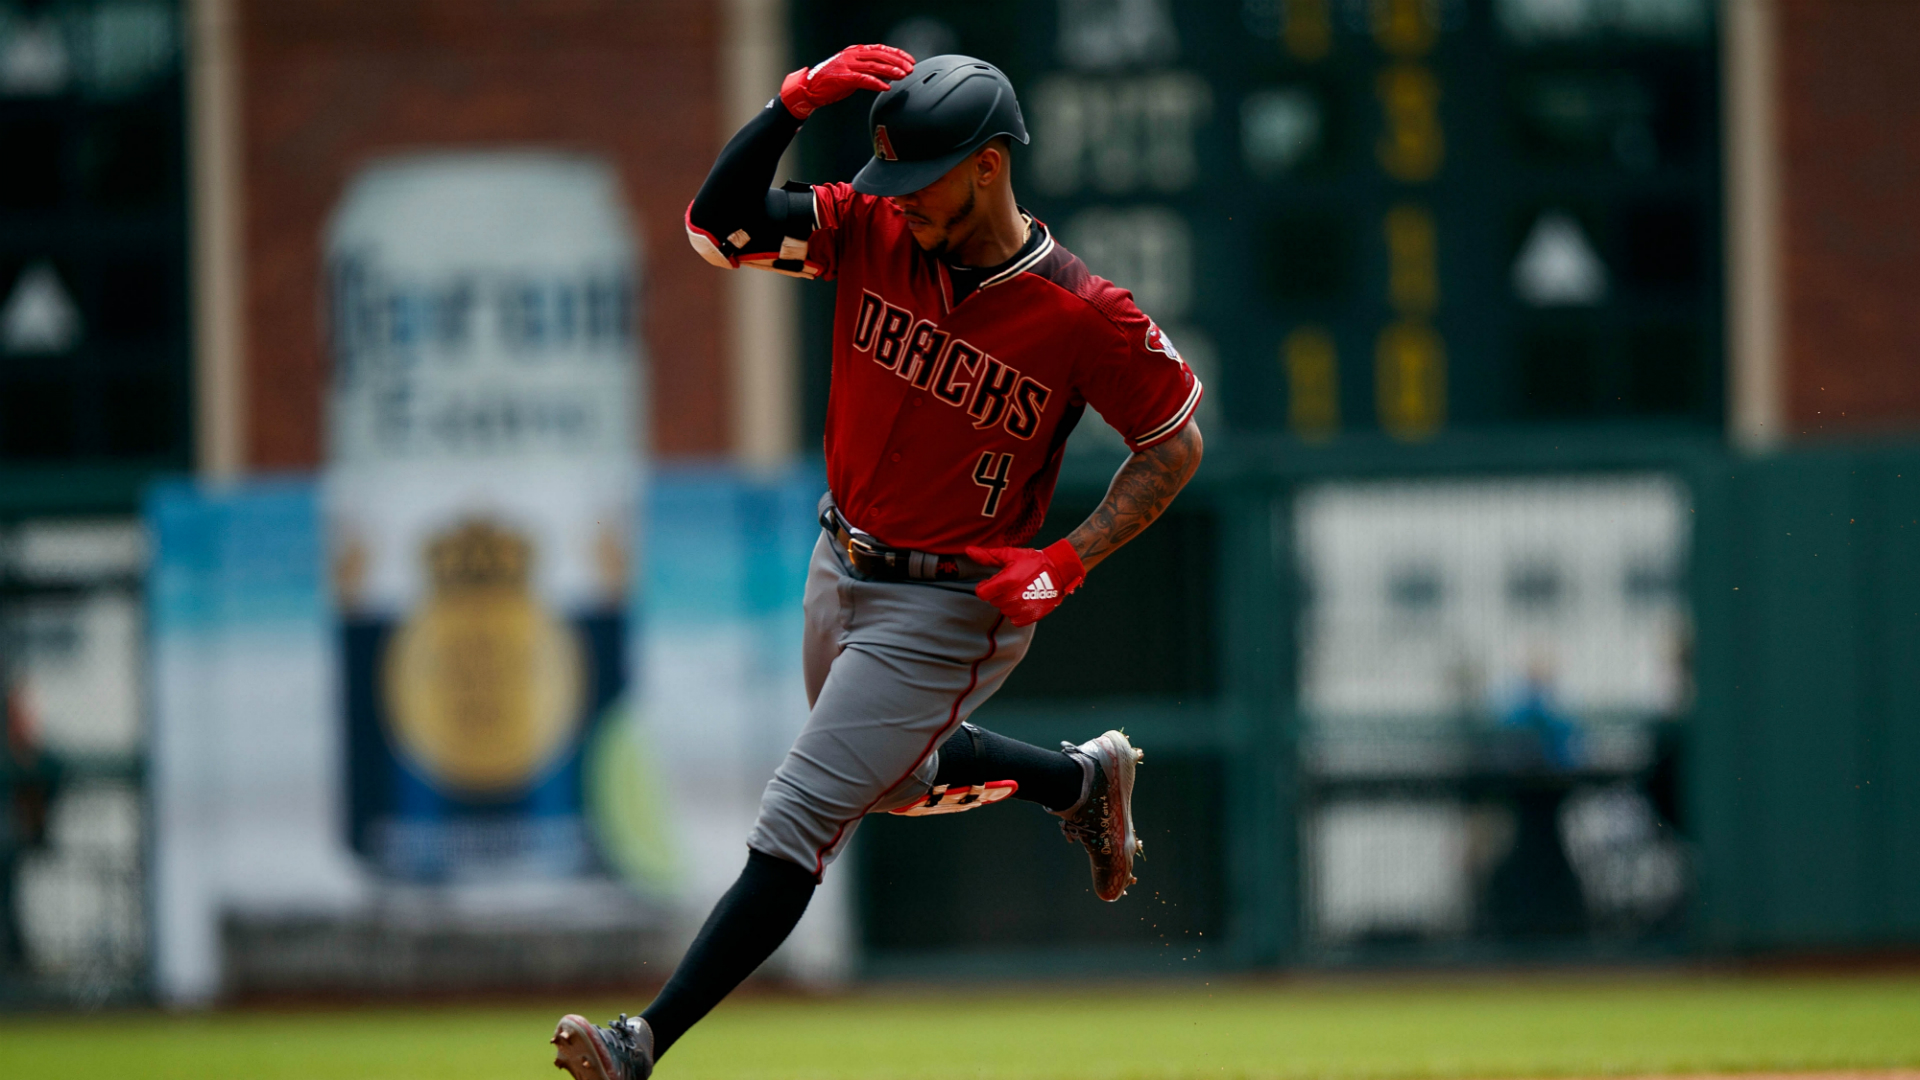 D-backs beat Reds for 4th straight